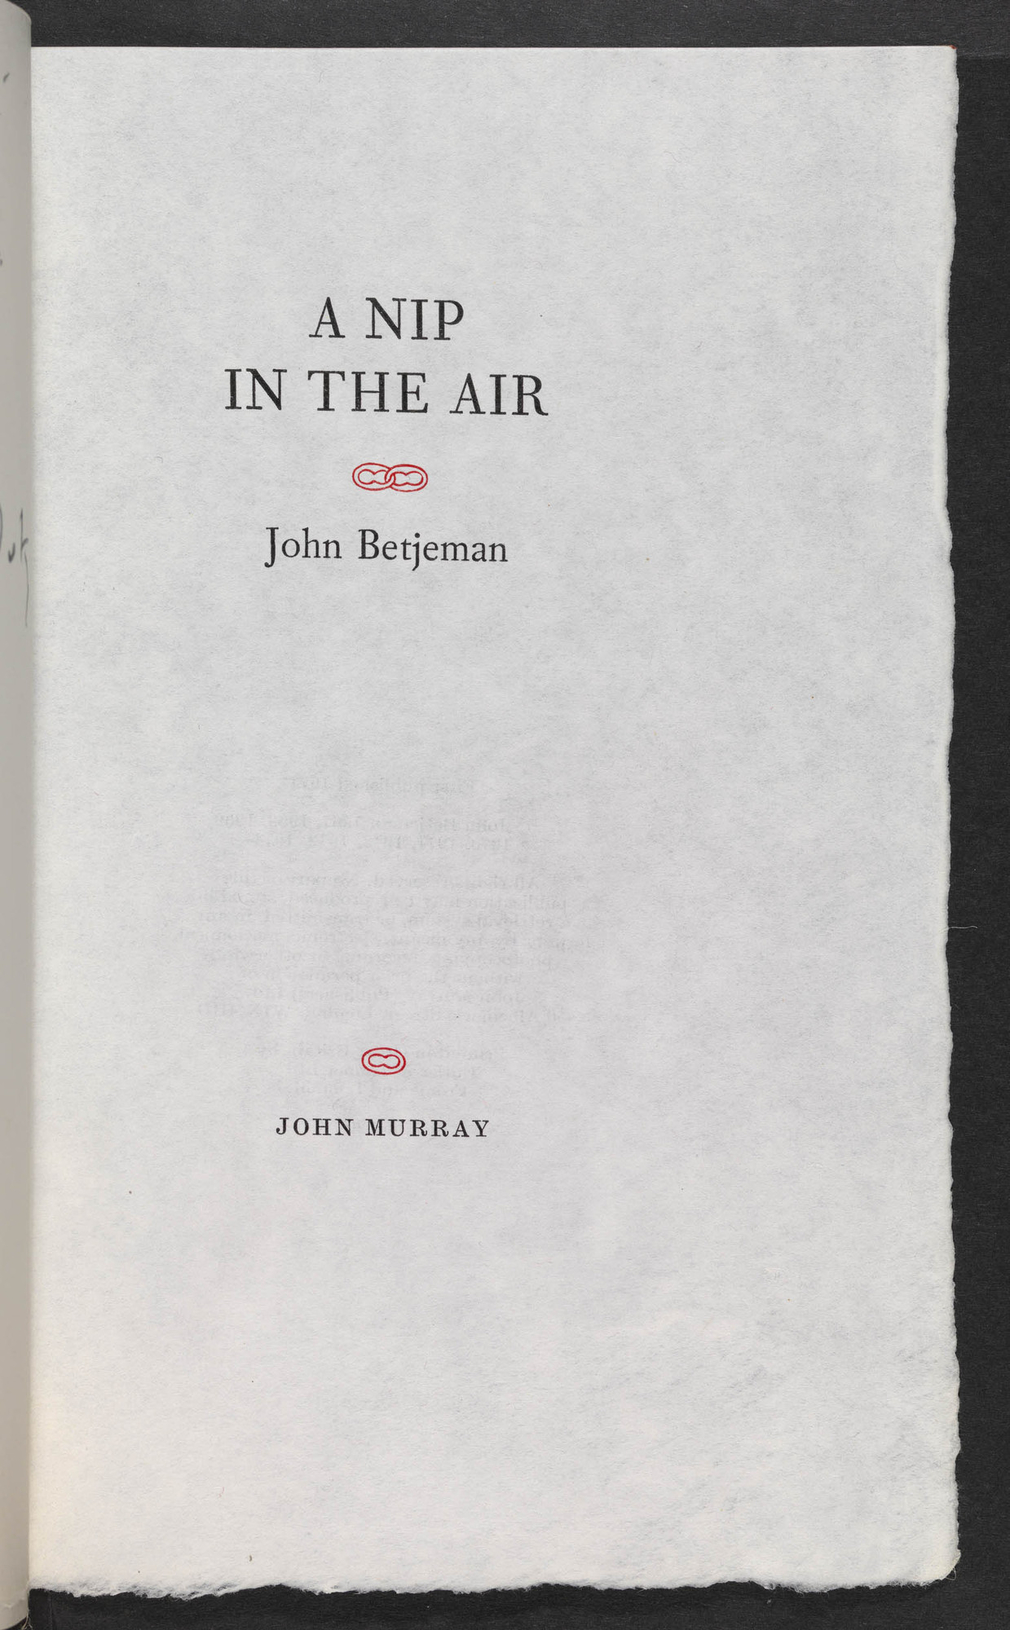 John Betjeman was born and brought up in North London. He began writing poetry at school and continued at Oxford, where he made the acquaintance of the poets W.H. Auden and Louis MacNiece. He developed a strong interest in architecture and was a founder m